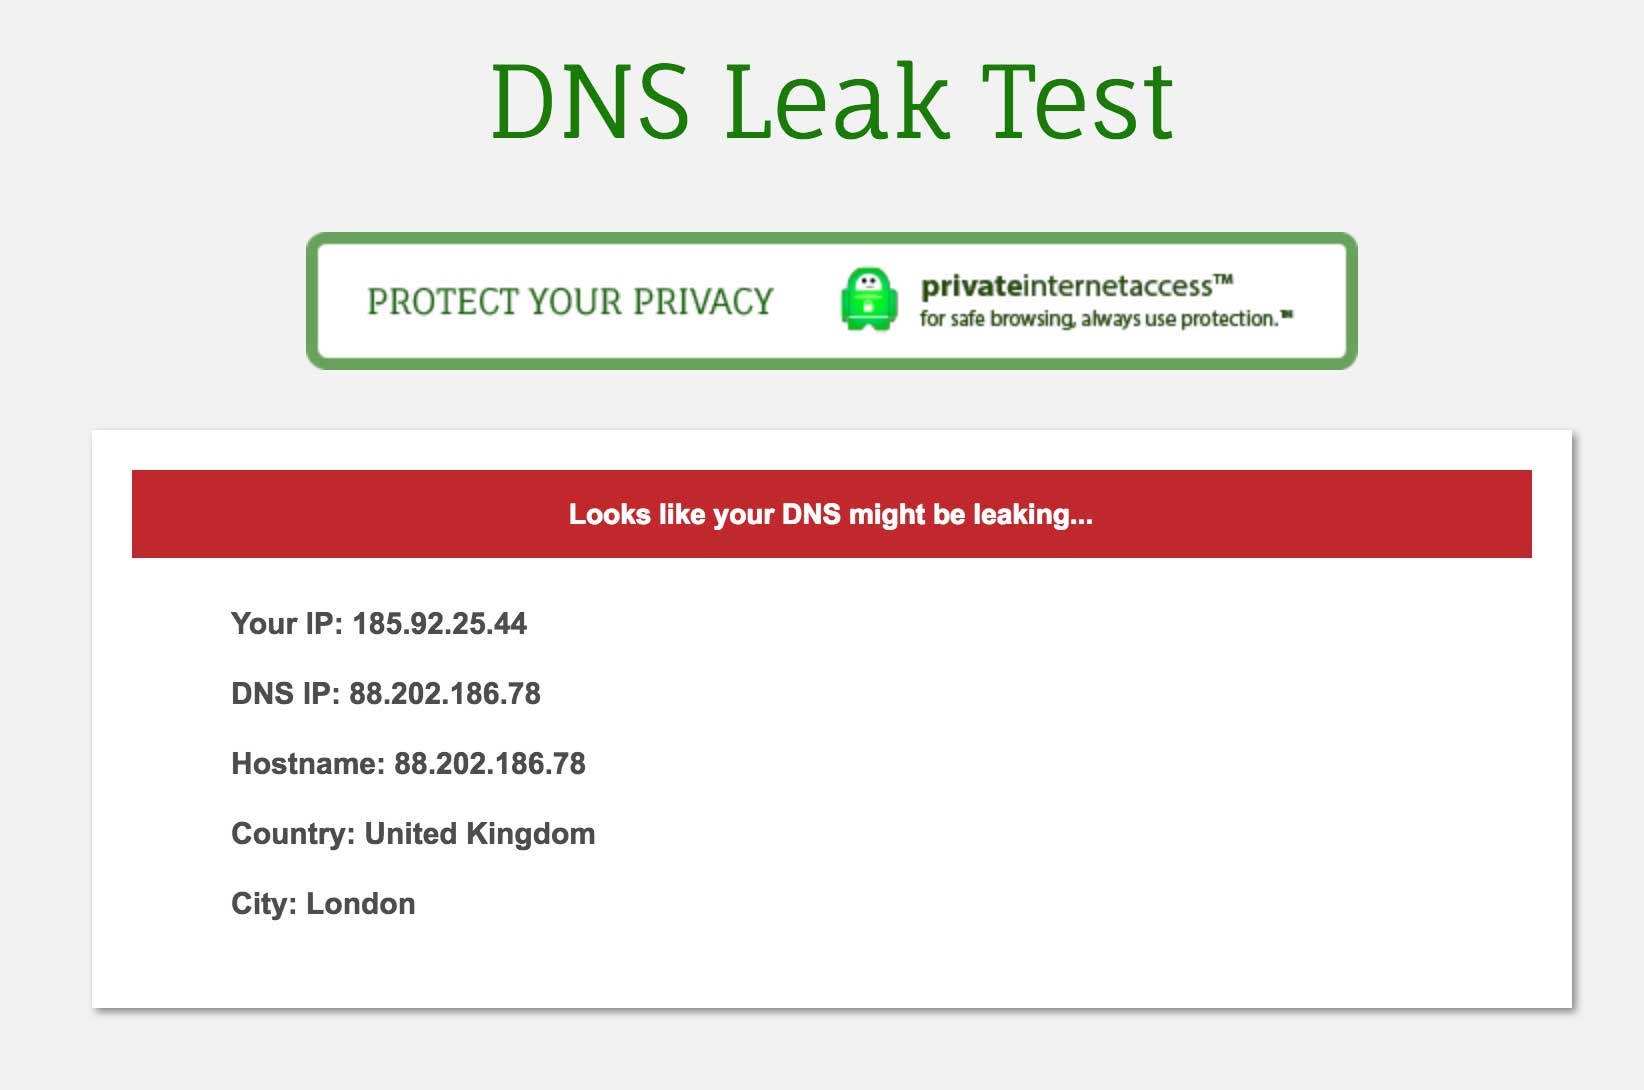 DNS Leak Testing Tools EXPOSED - Tools That Misleading Users